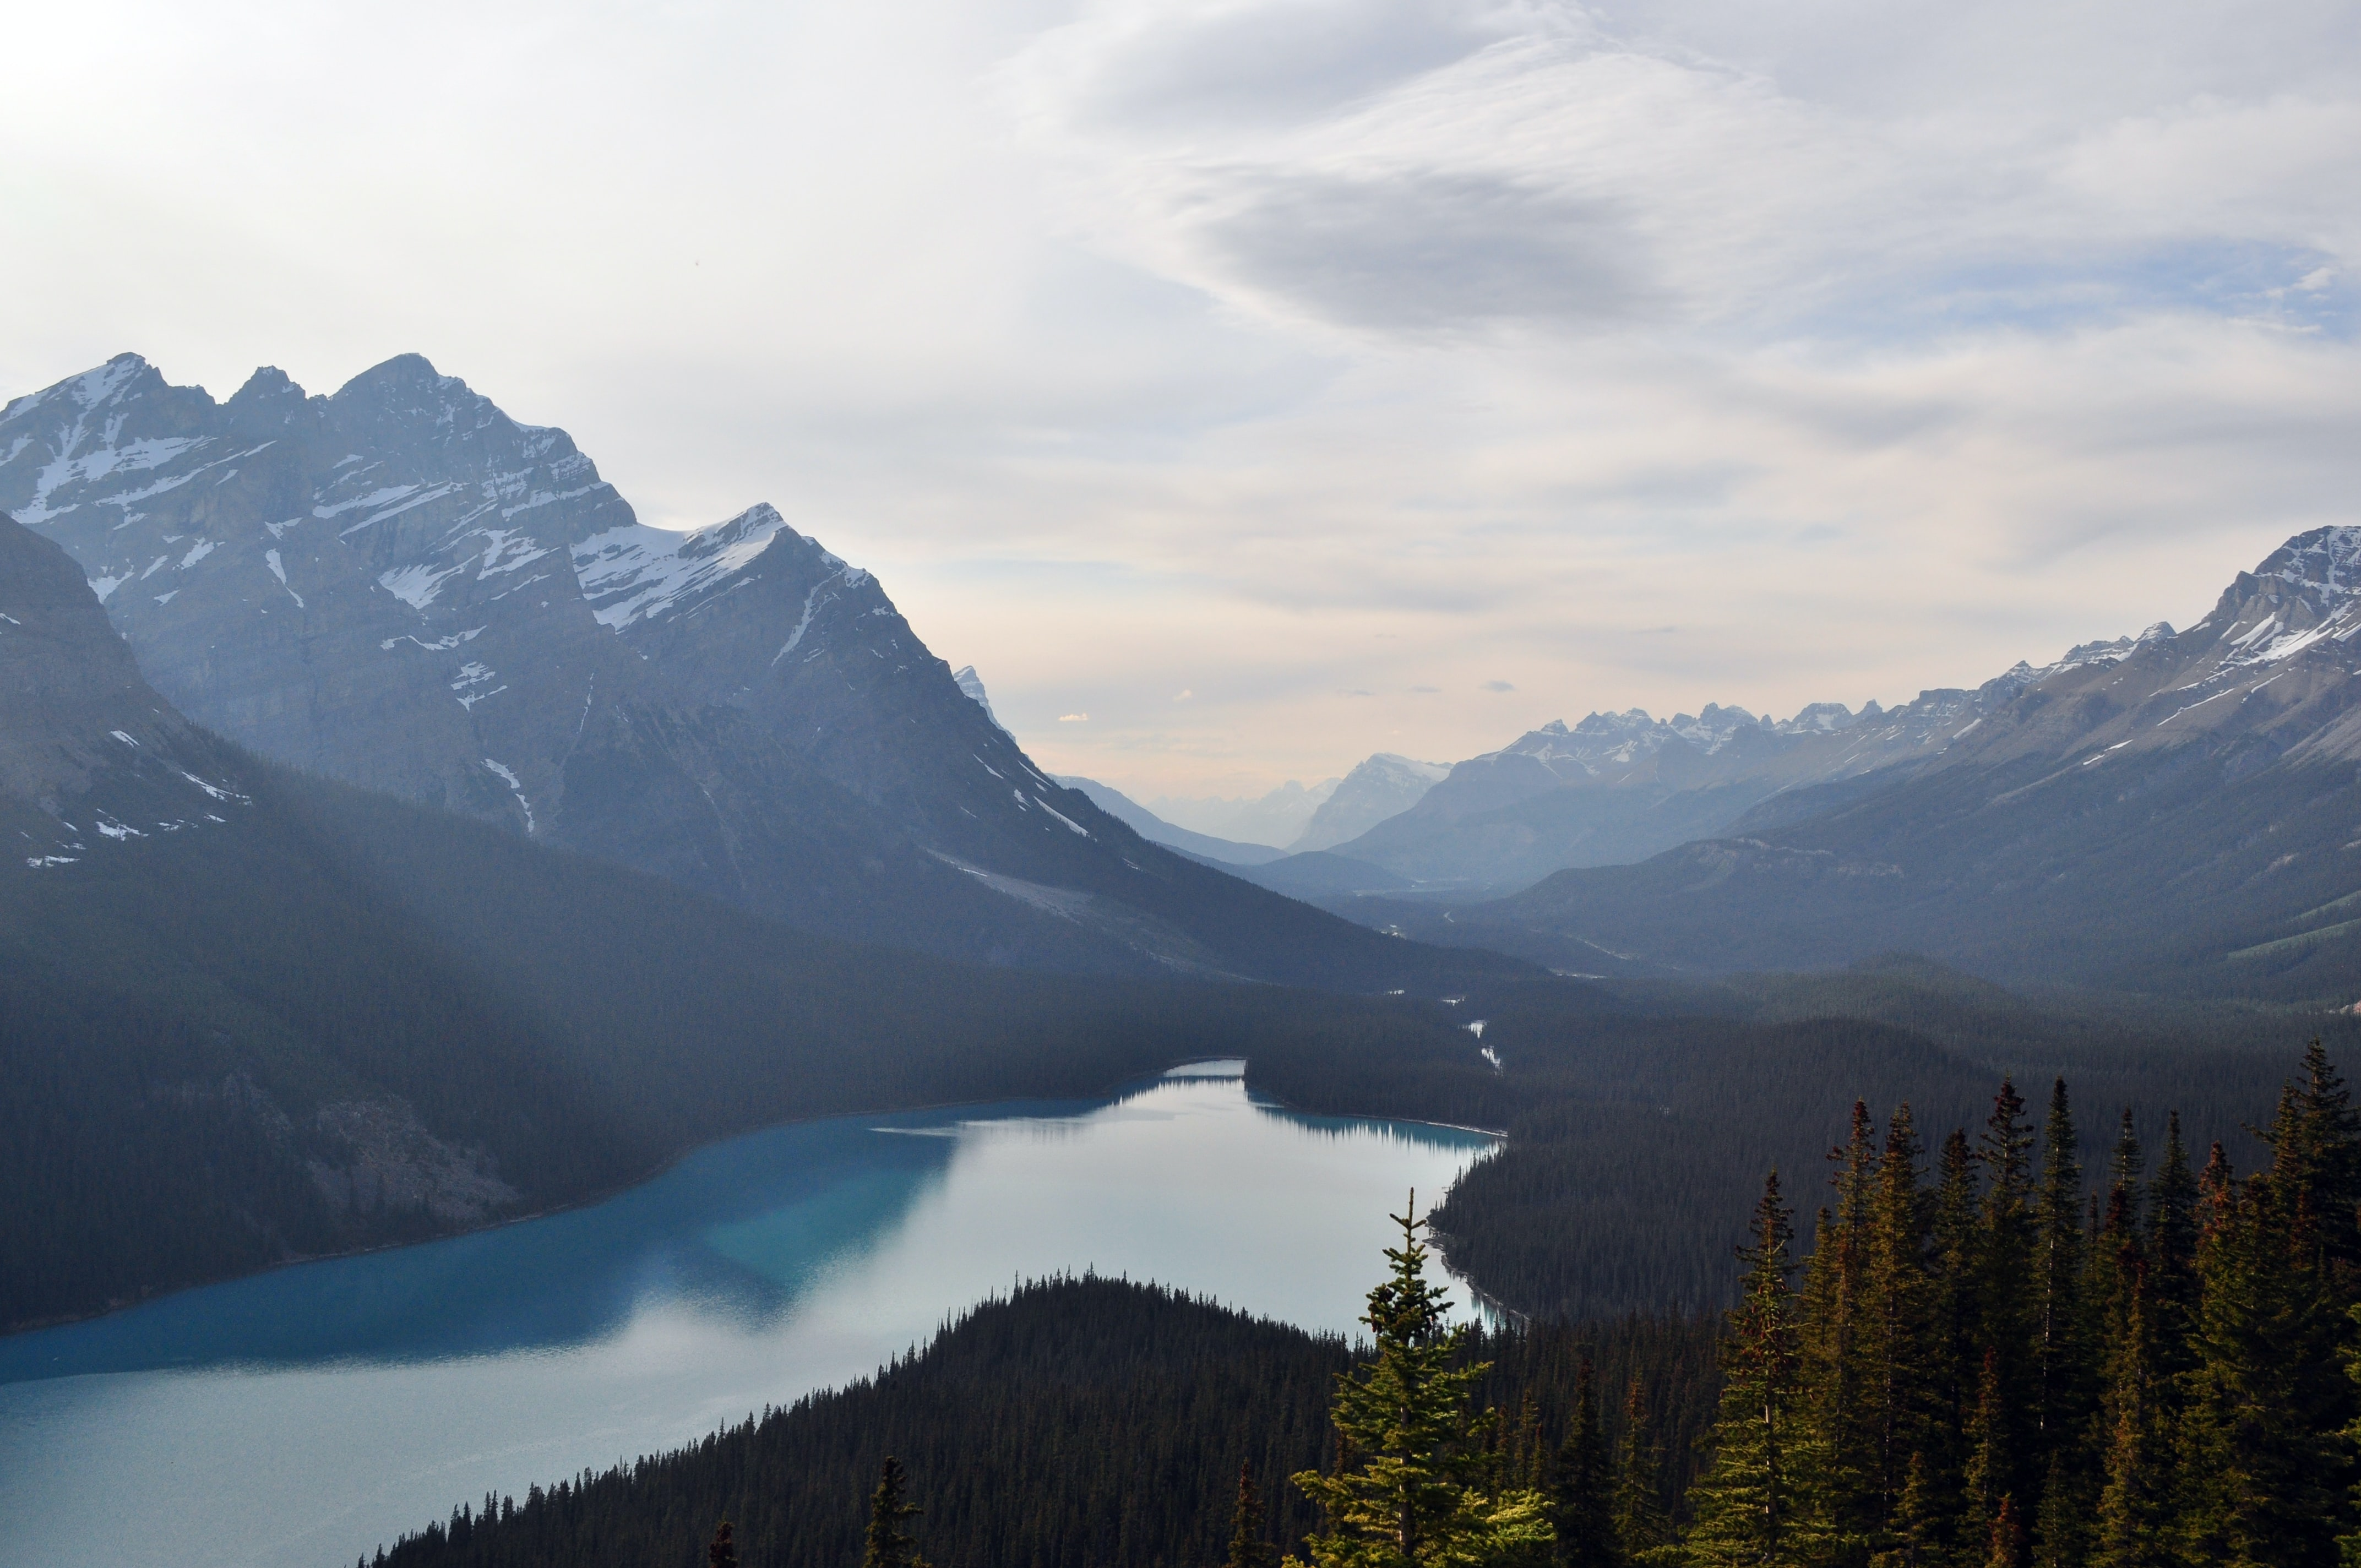 A scenic shot of the trident-shaped Peyto Lake in the Canadian Rockies